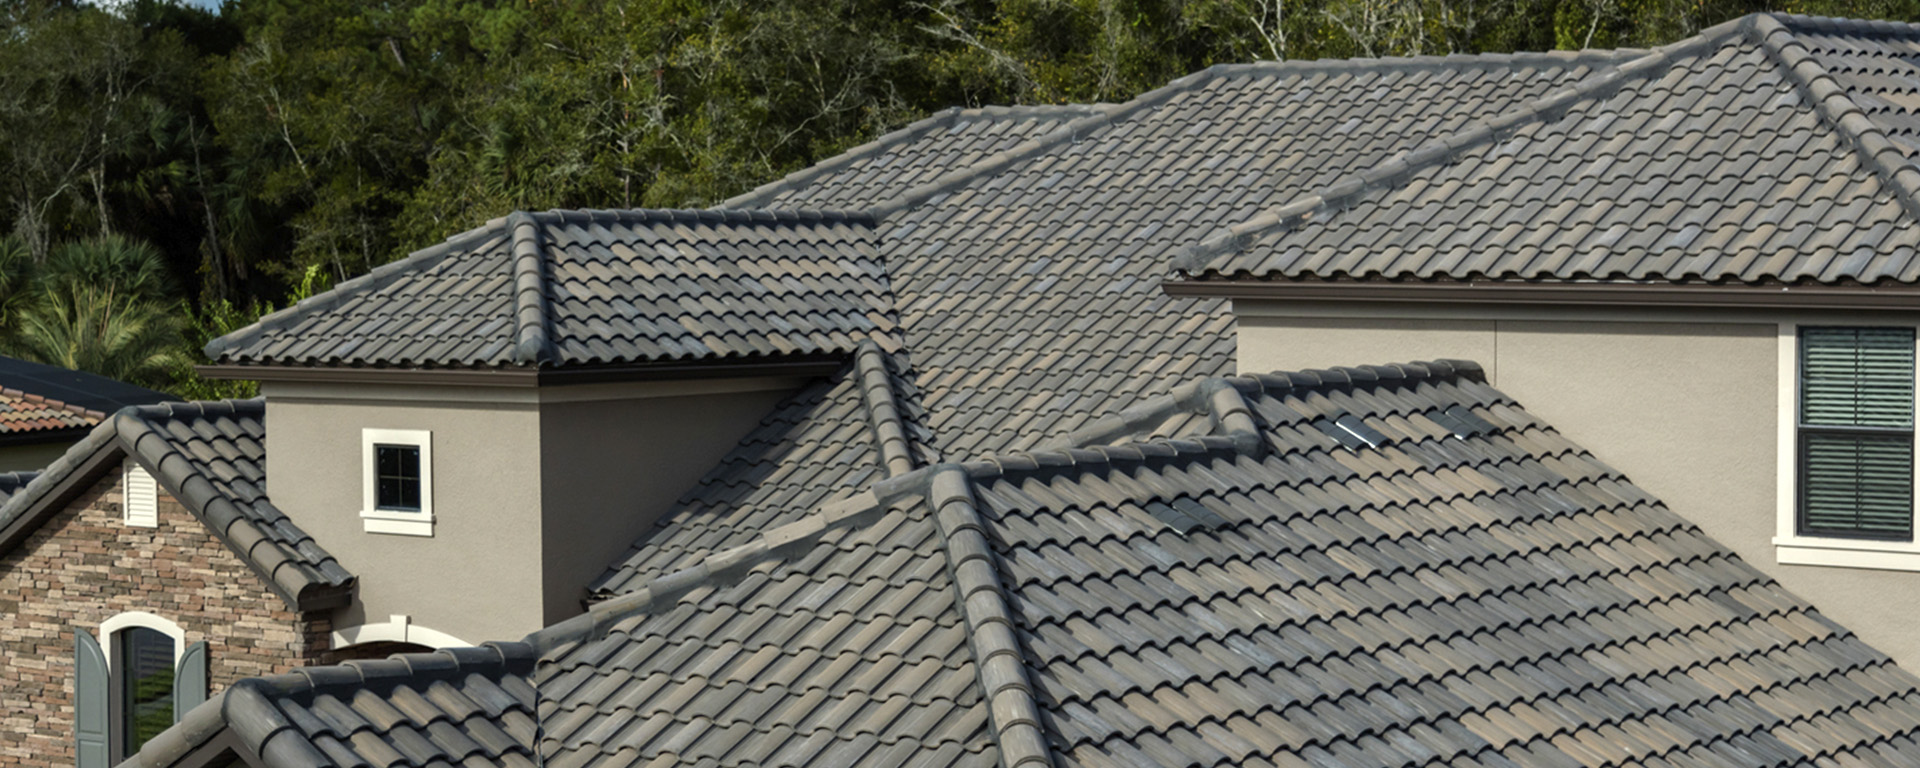 roofing company in sarasota